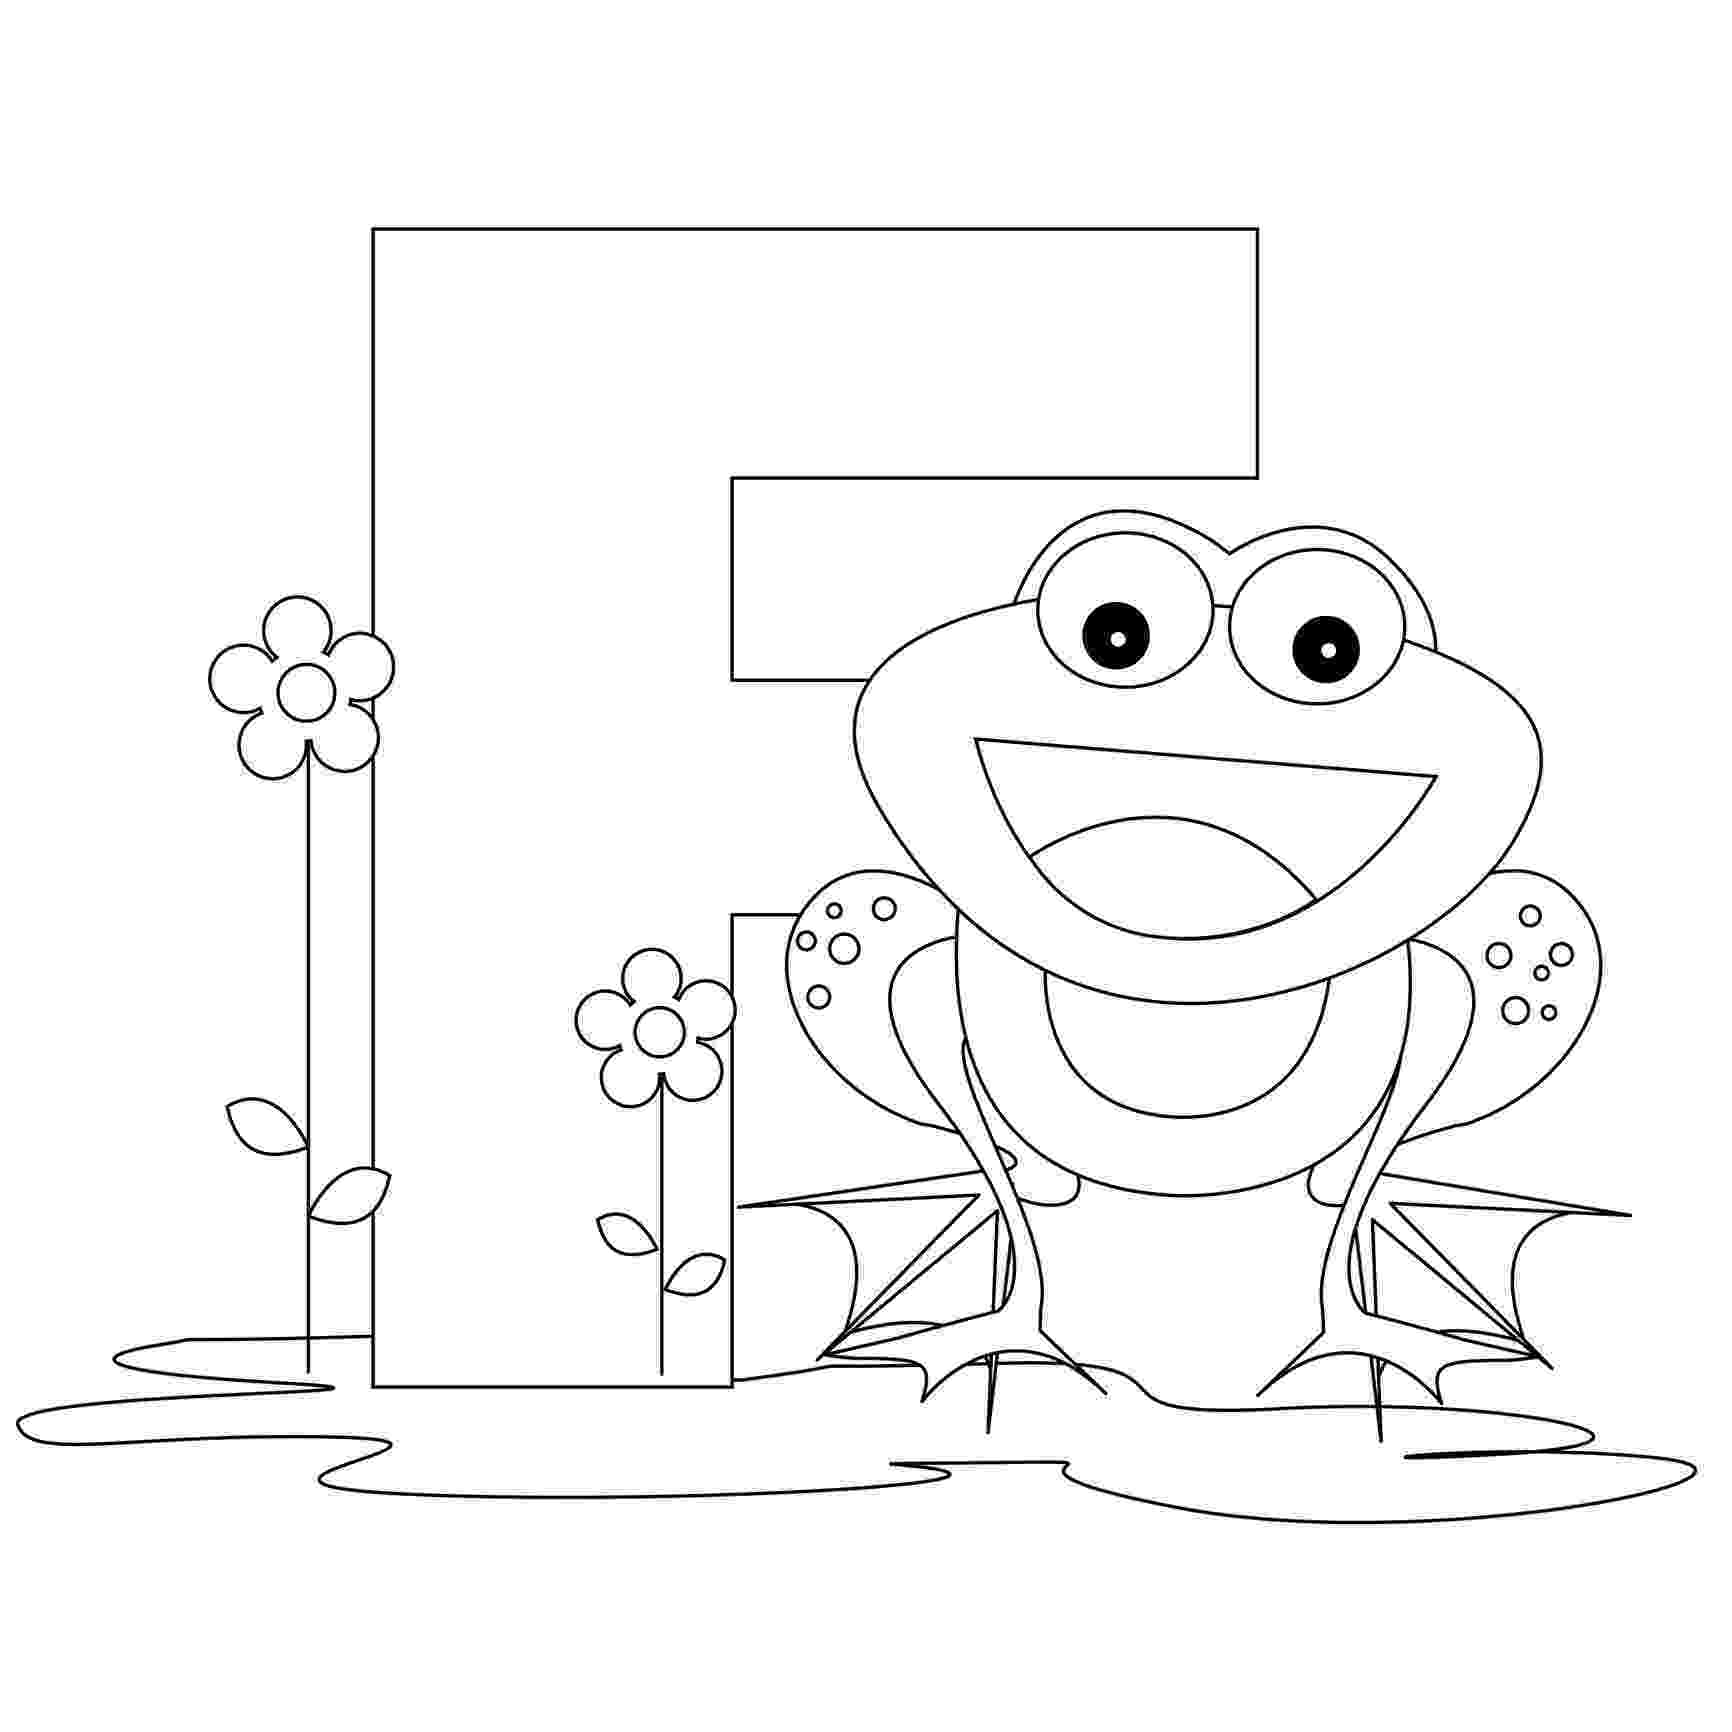 color letter f letter f is for flower coloring page free printable letter f color